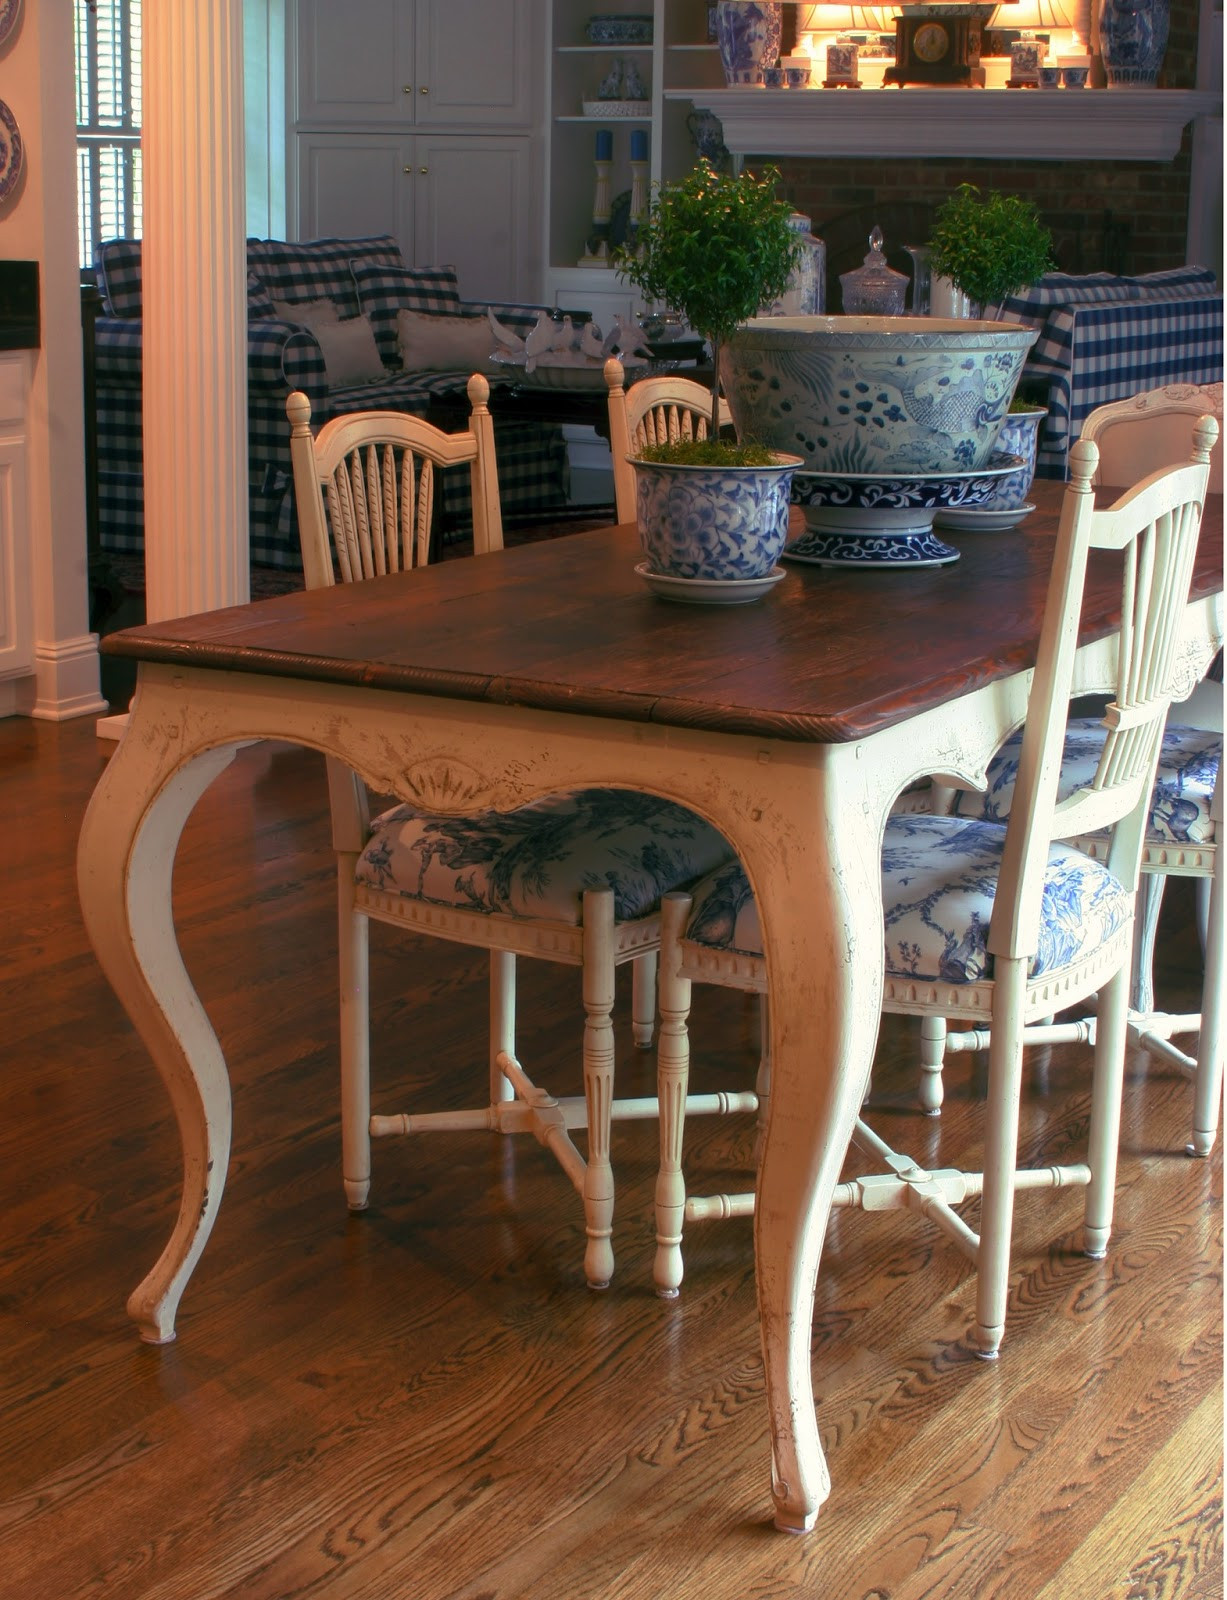 Best ideas about Country Dining Table . Save or Pin Inventia Design Custom Furniture 500 French Provincial Now.